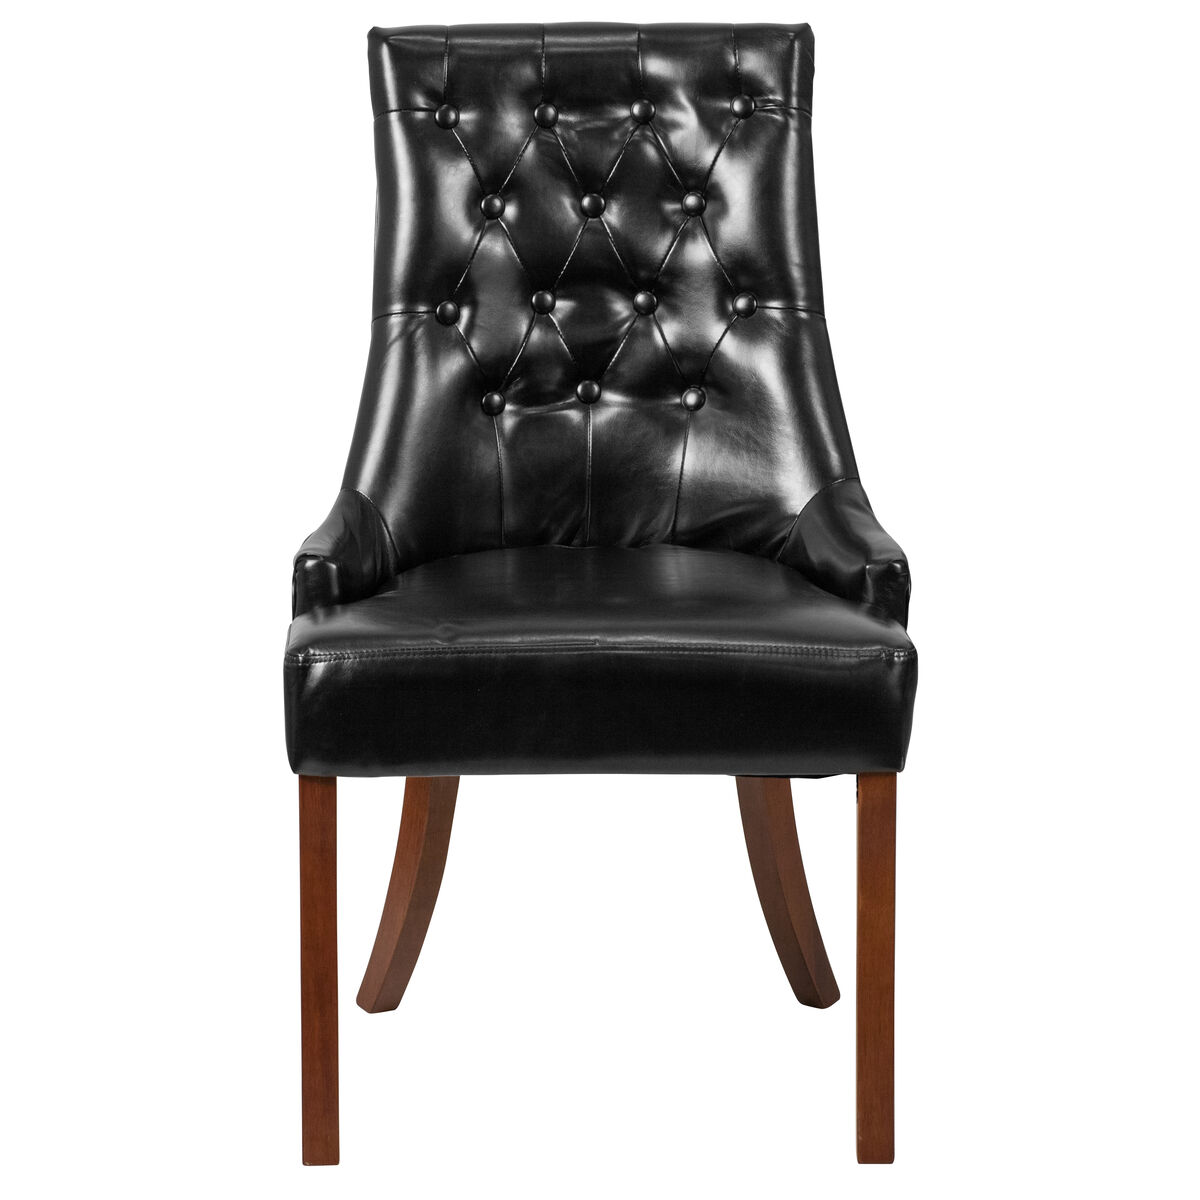 Black Leather Tufted Chair Qy A08 Bk Gg